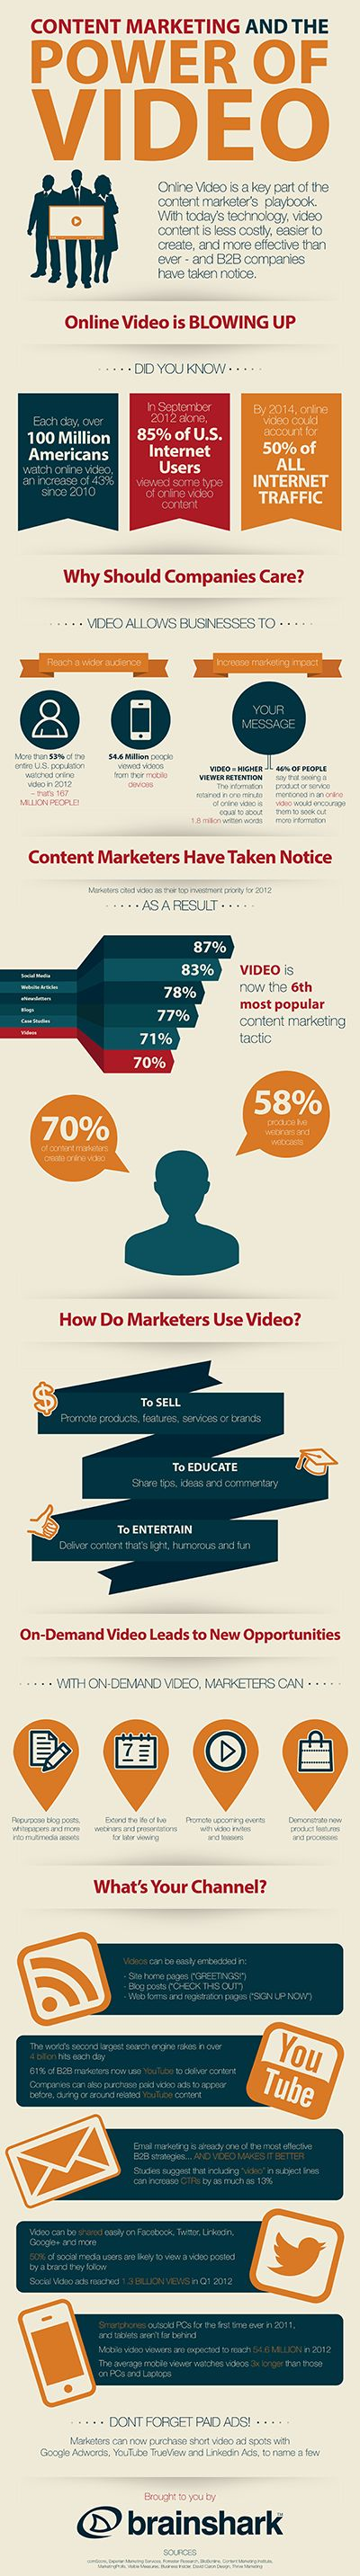 Content Marketing and the Power of Video [Infographic].